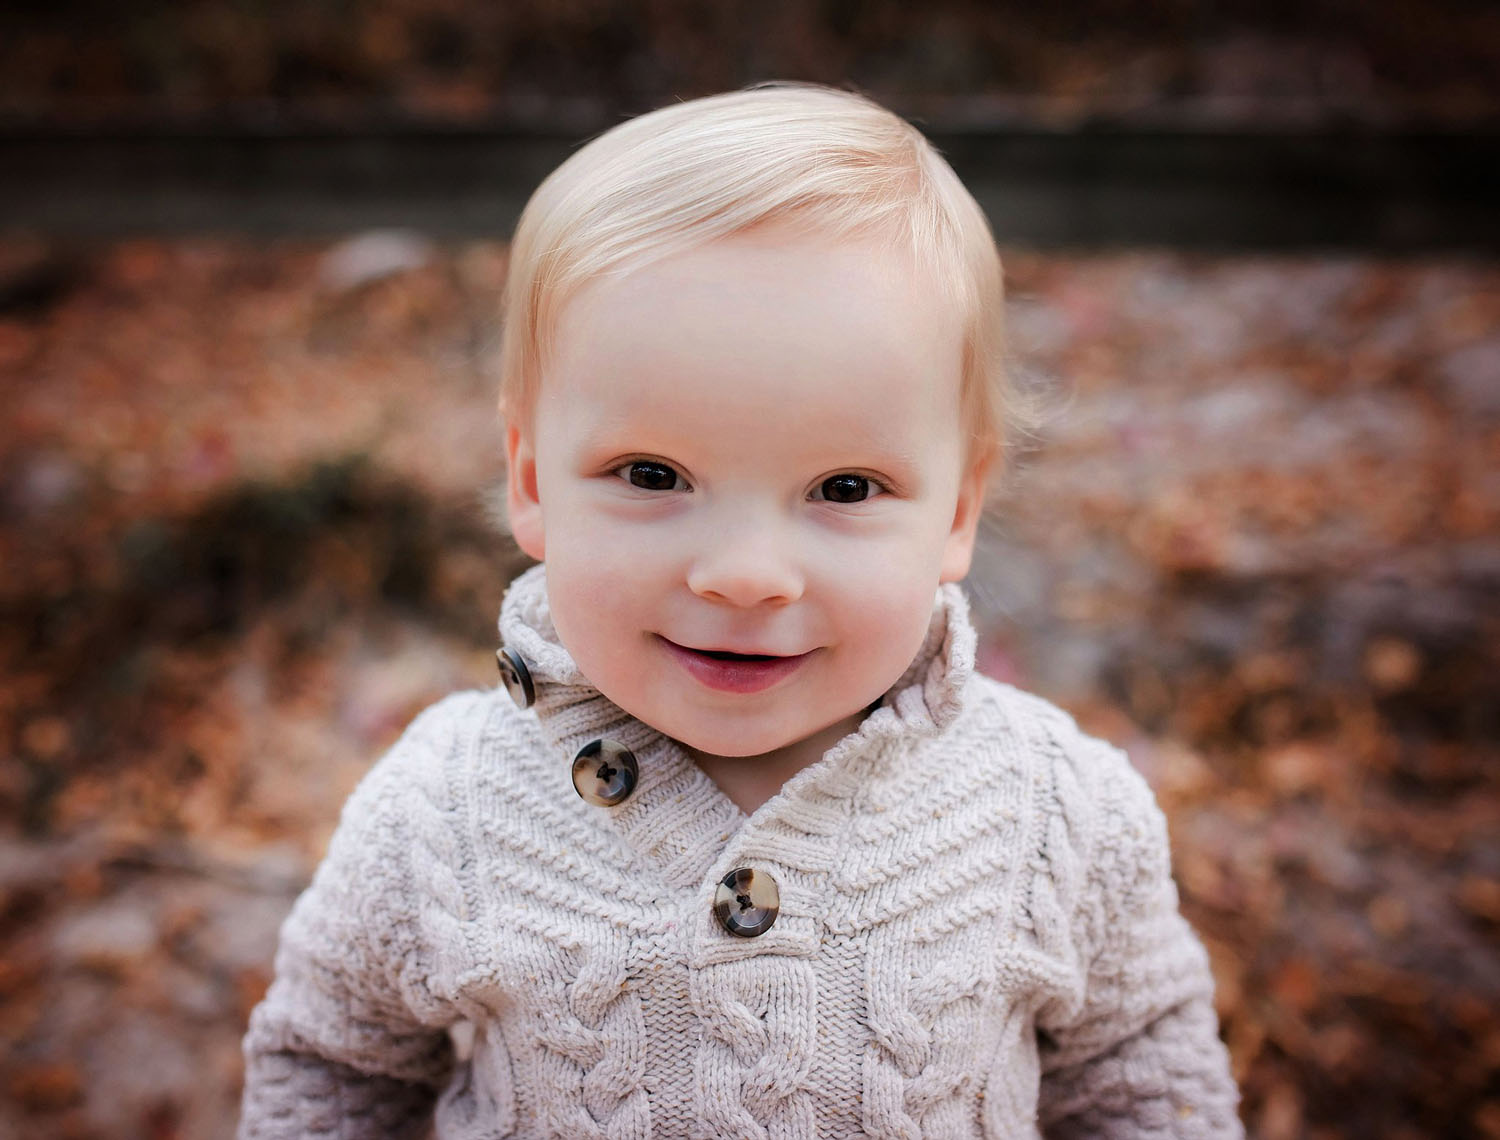 outdoor-portrait-of-a-toddler-boy-by-melissa-bliss-photography-norfolk-portsmouth-chesapeake-photographer.jpg